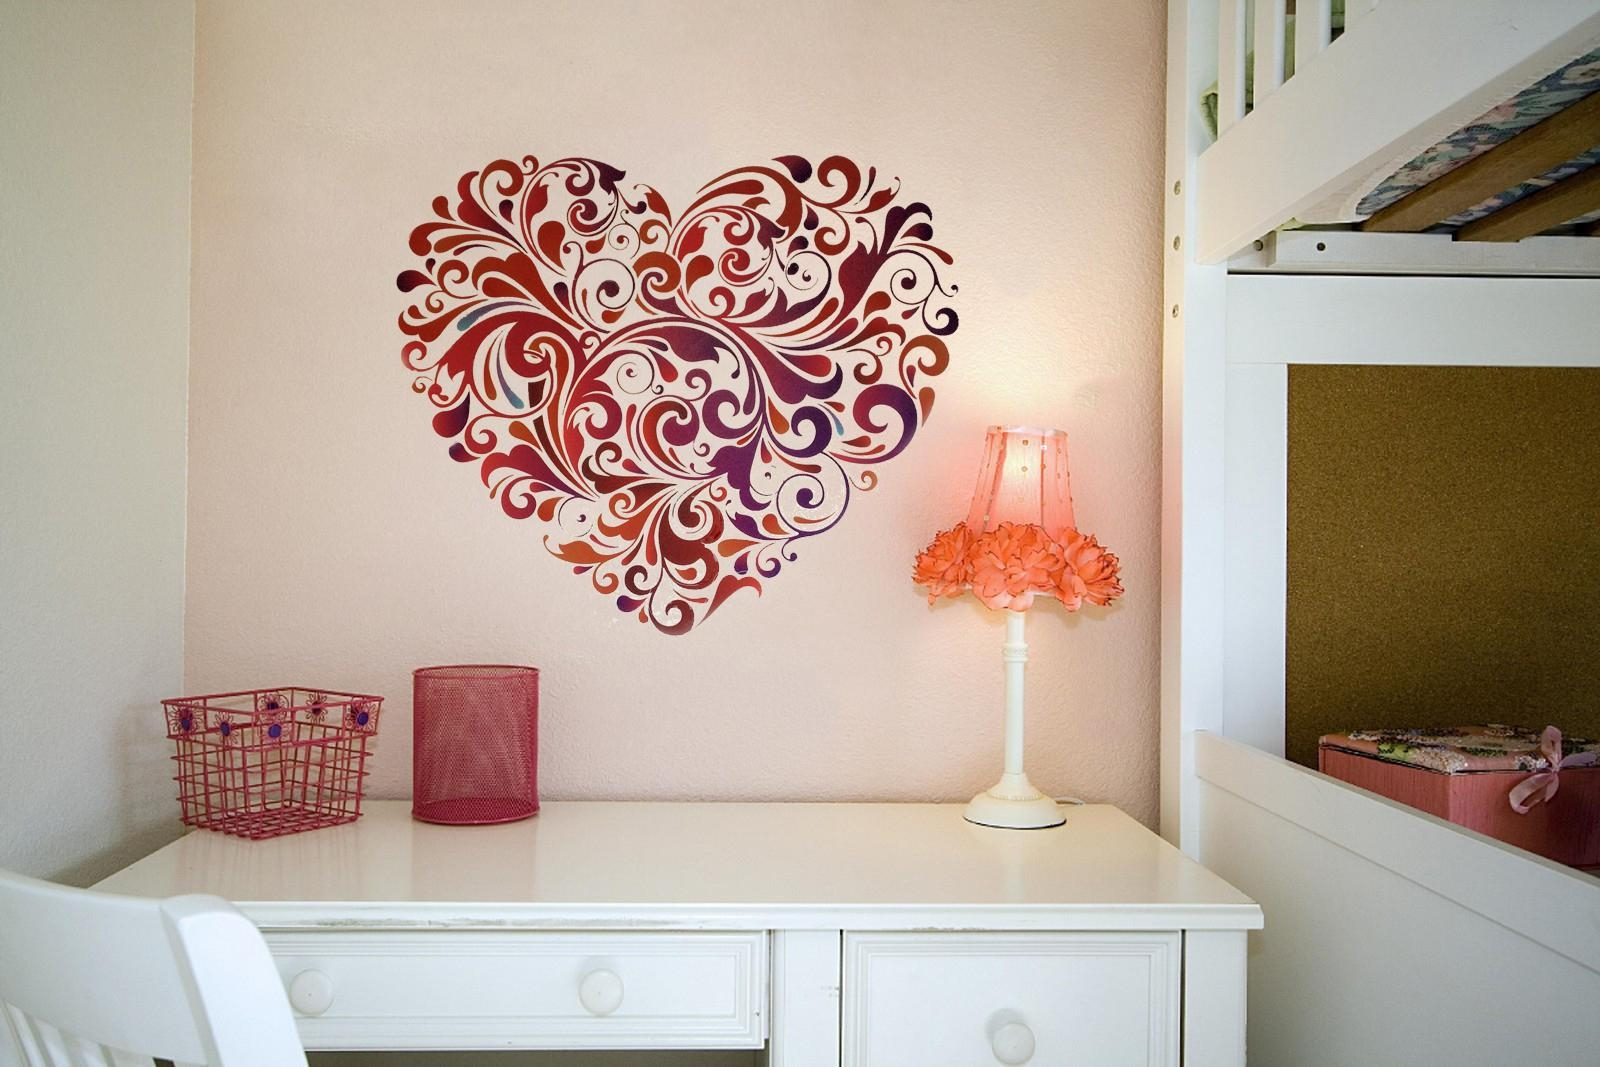 Unique Wall Decor Ideas To Home Decor Wall Art Ideas – Home With Wall Art For Bedrooms (Image 14 of 21)